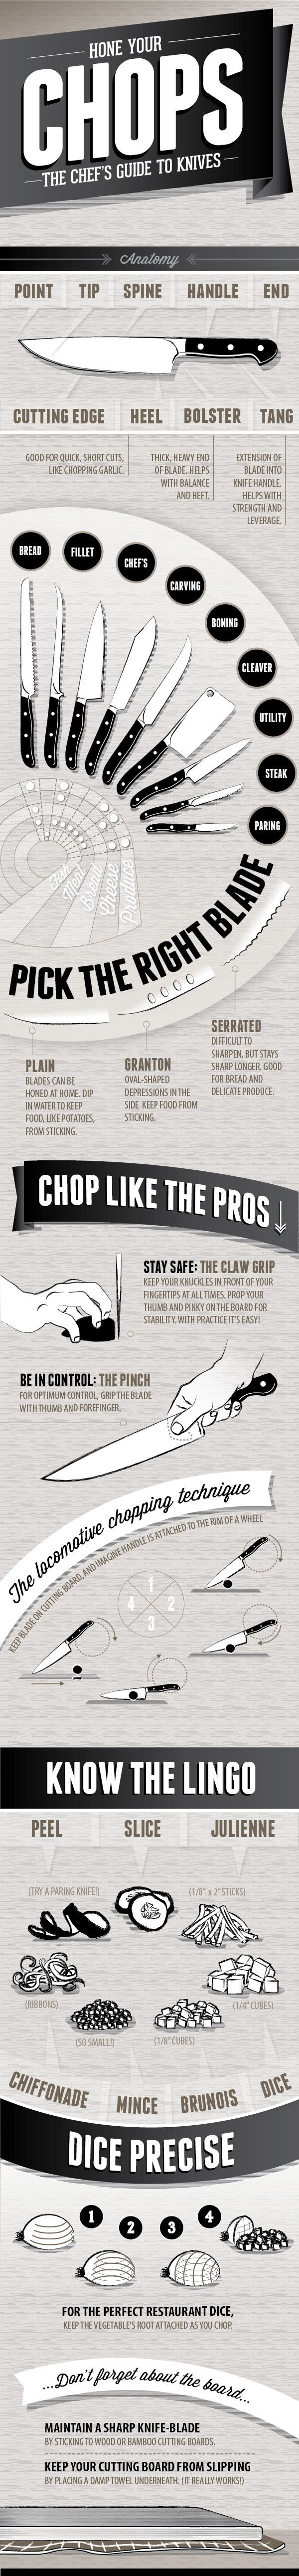 Quick and handy low-down on the basics of kitchen knives.